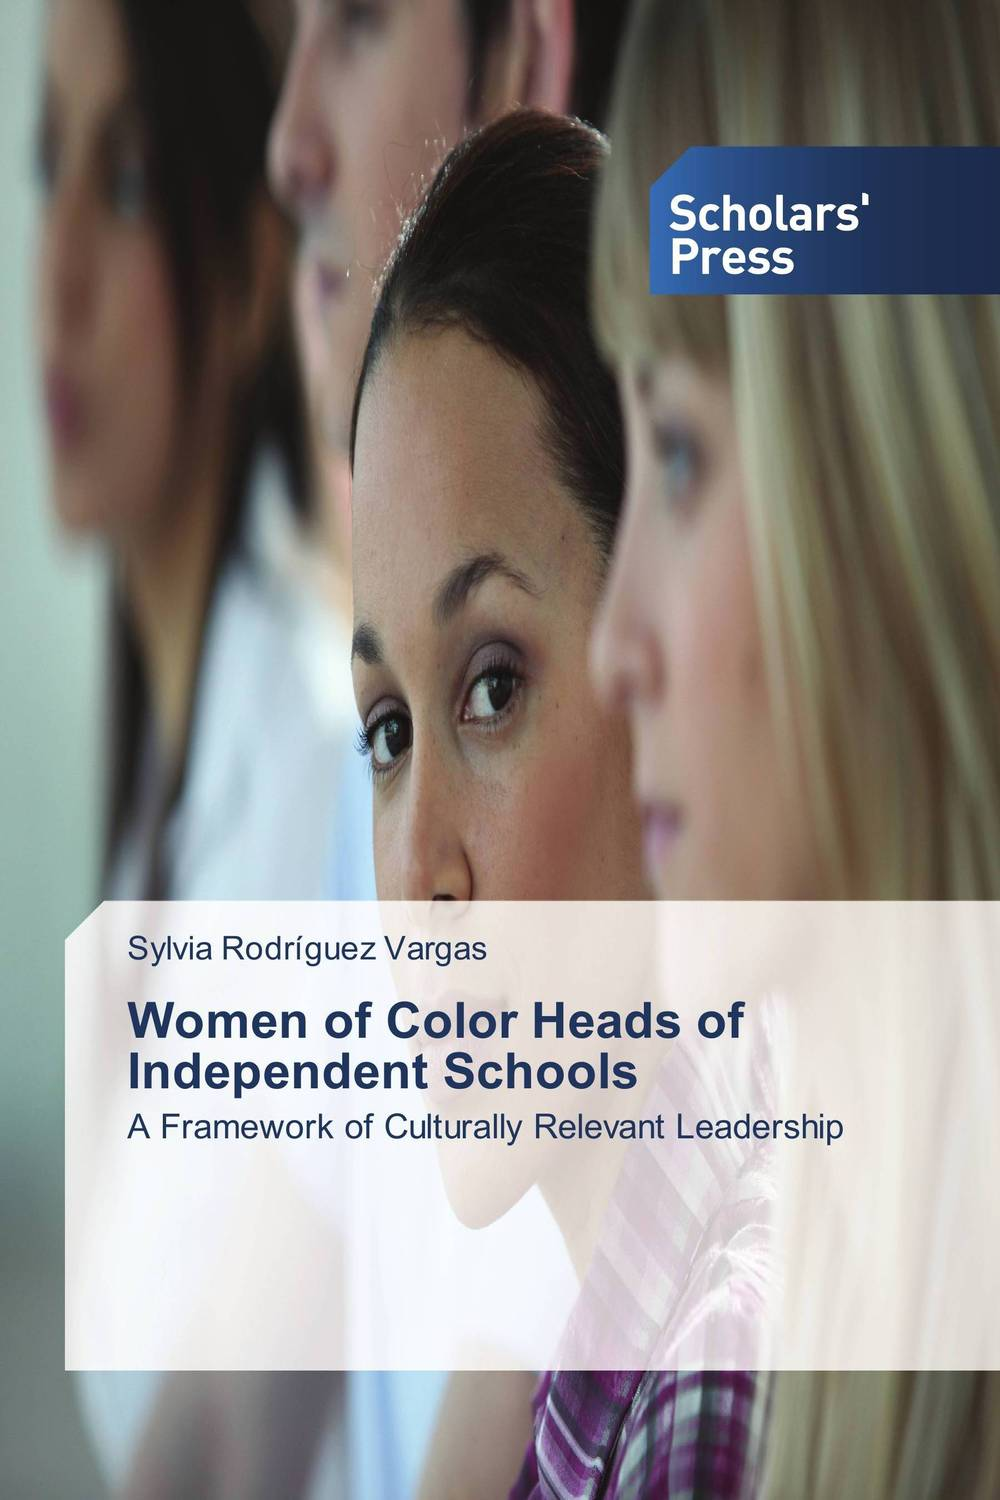 Women of Color Heads of Independent Schools